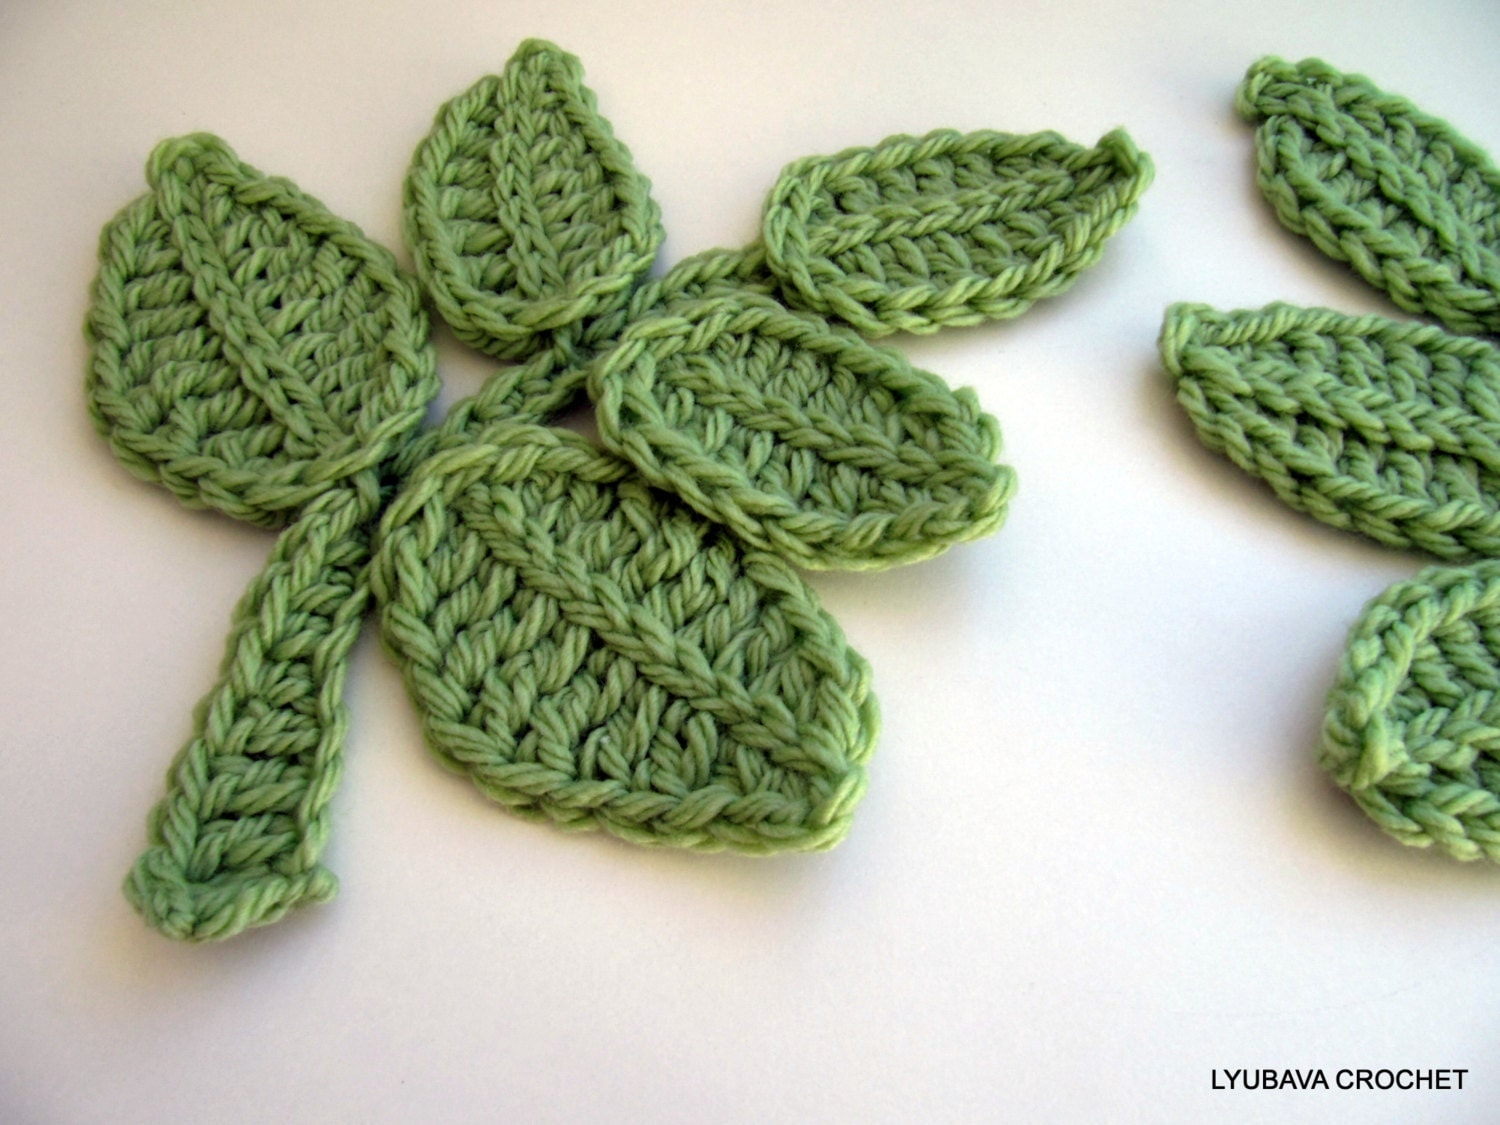 Crocheting Leaves : Alfa img - Showing > Crochet Flowers and Leaves